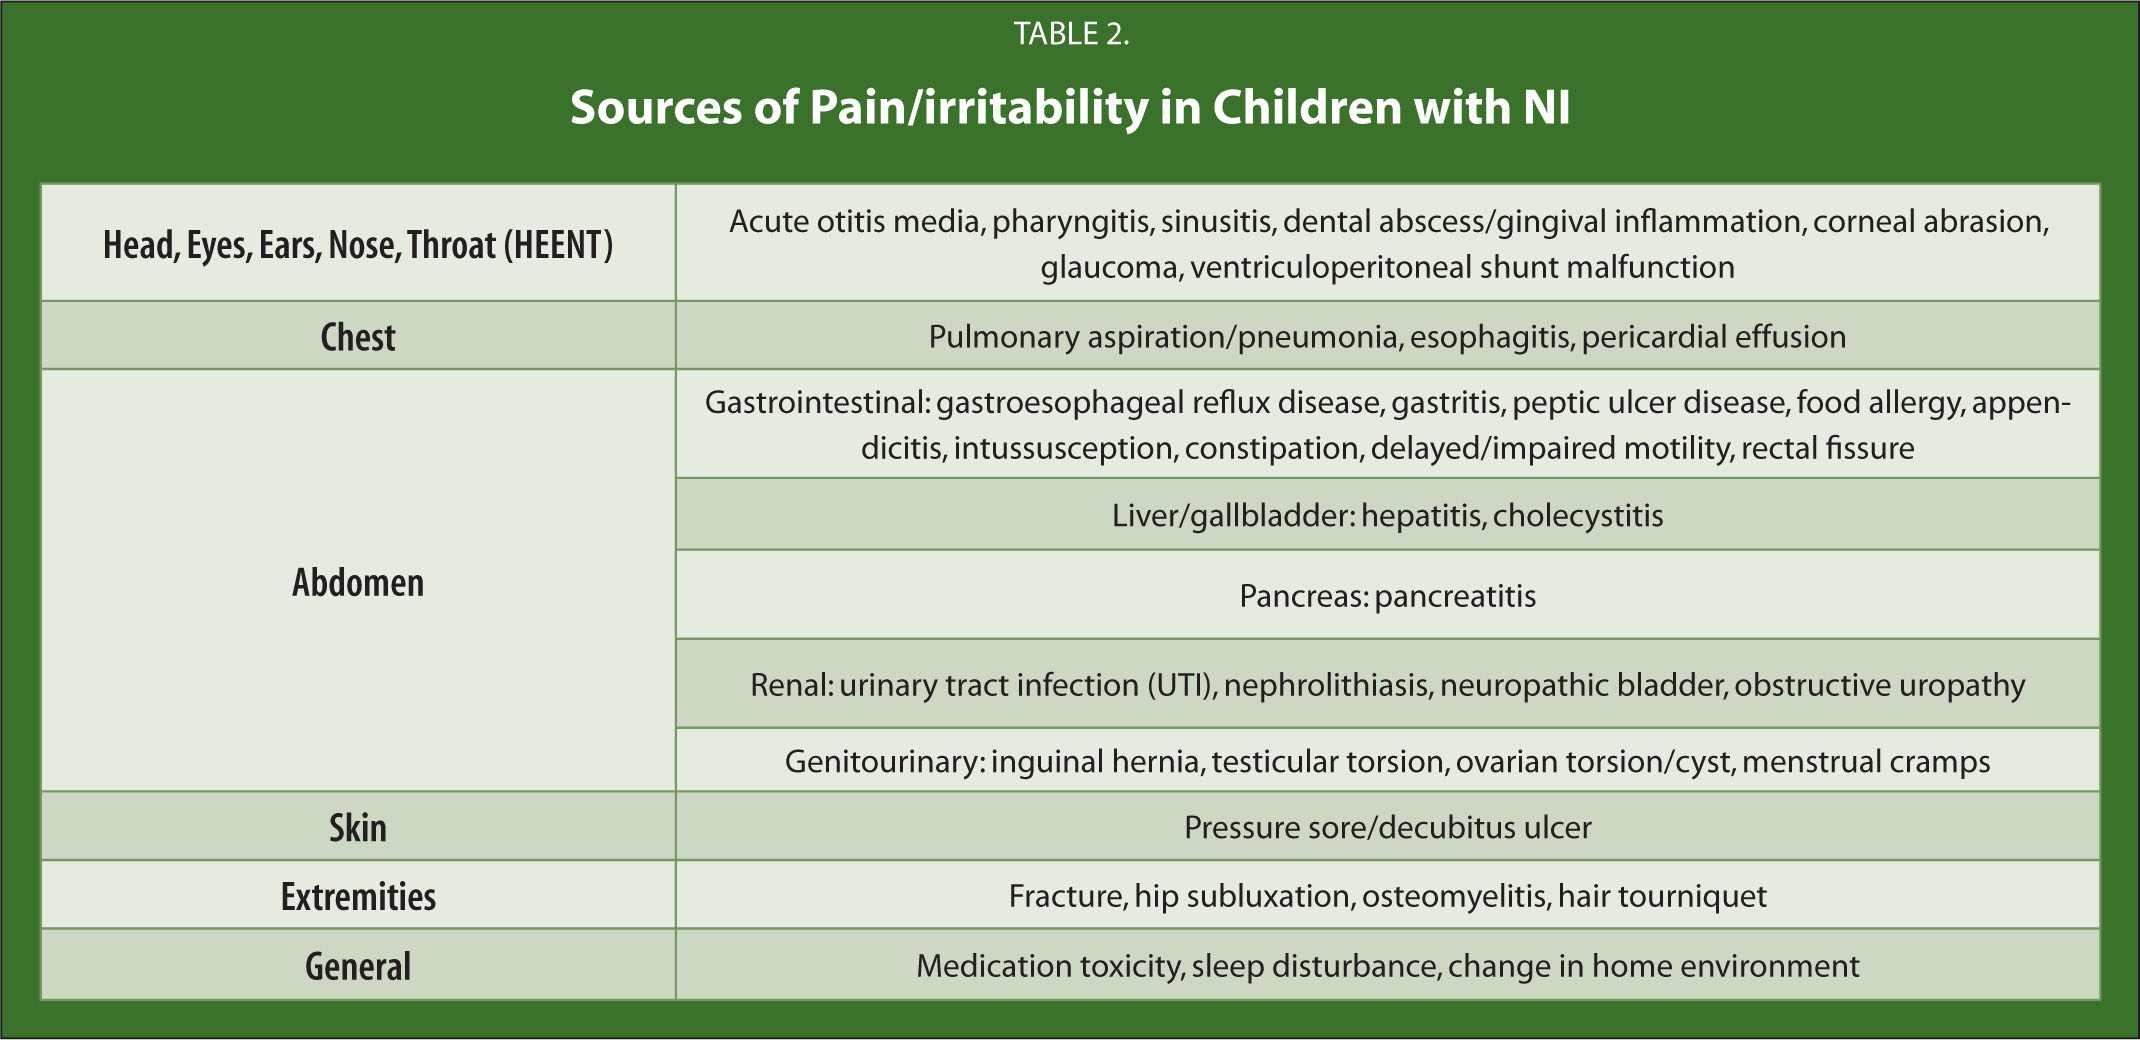 Sources of Pain/irritability in Children with NI